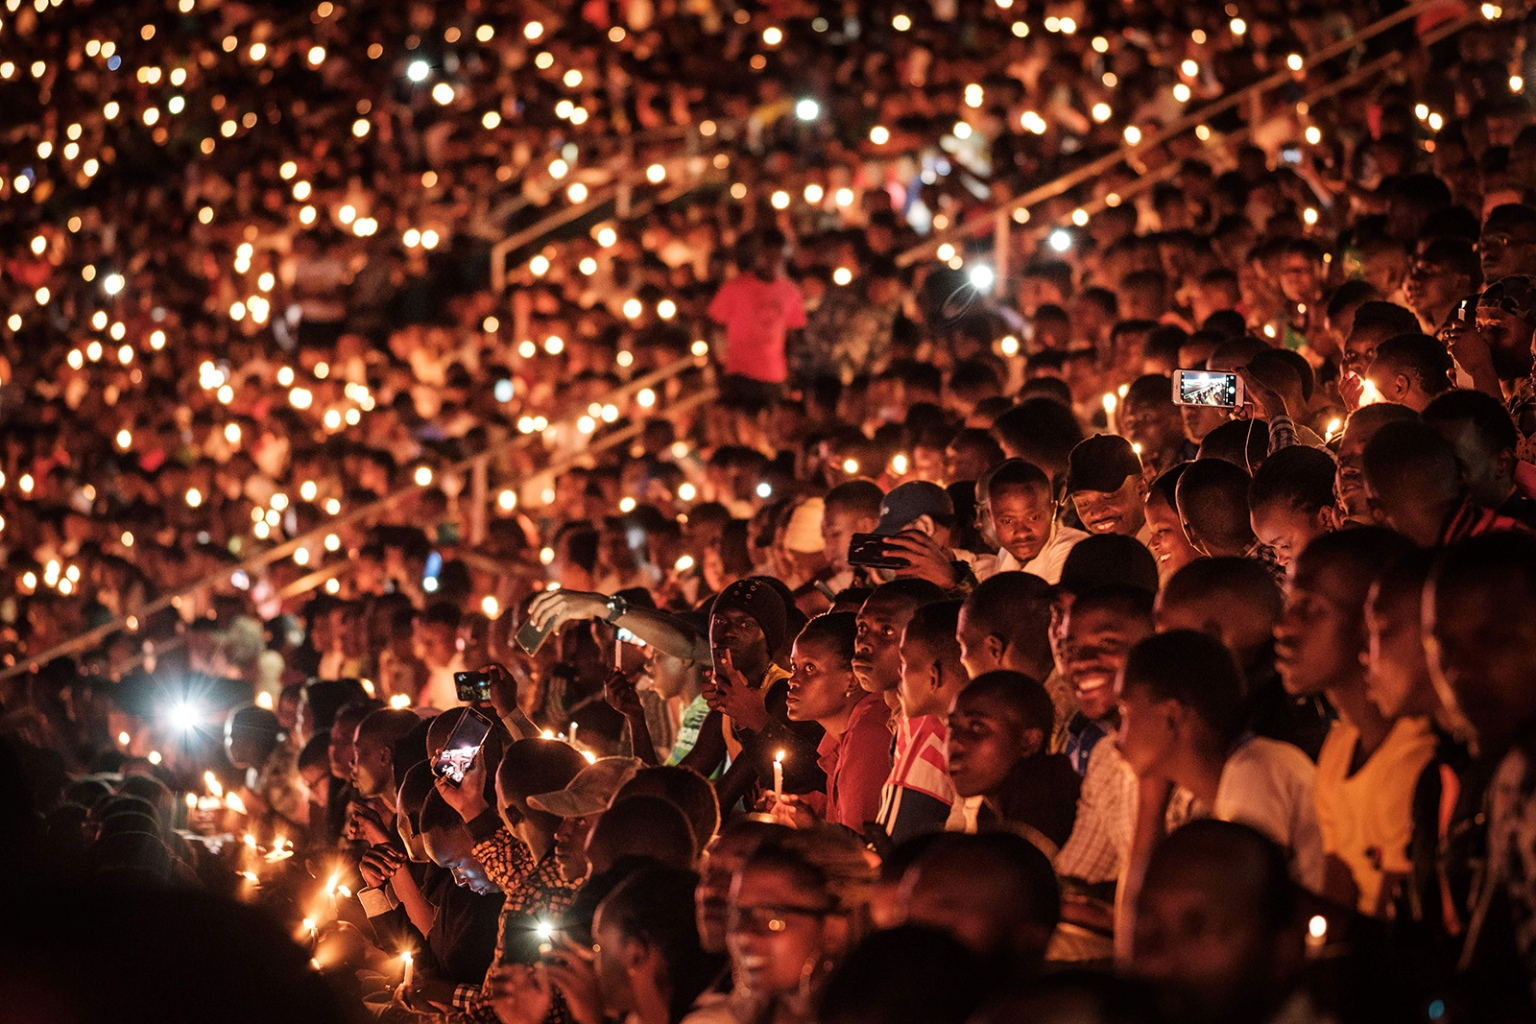 People hold candles as they attend a night vigil and prayer at the Amahoro Stadium as part of the 25th commemmoration of the 1994 genocide in Kigali, Rwanda, on April 7. The country began 100 days of mourning for more than 800,000 people killed in the genocide. YASUYOSHI CHIBA/AFP/Getty Images